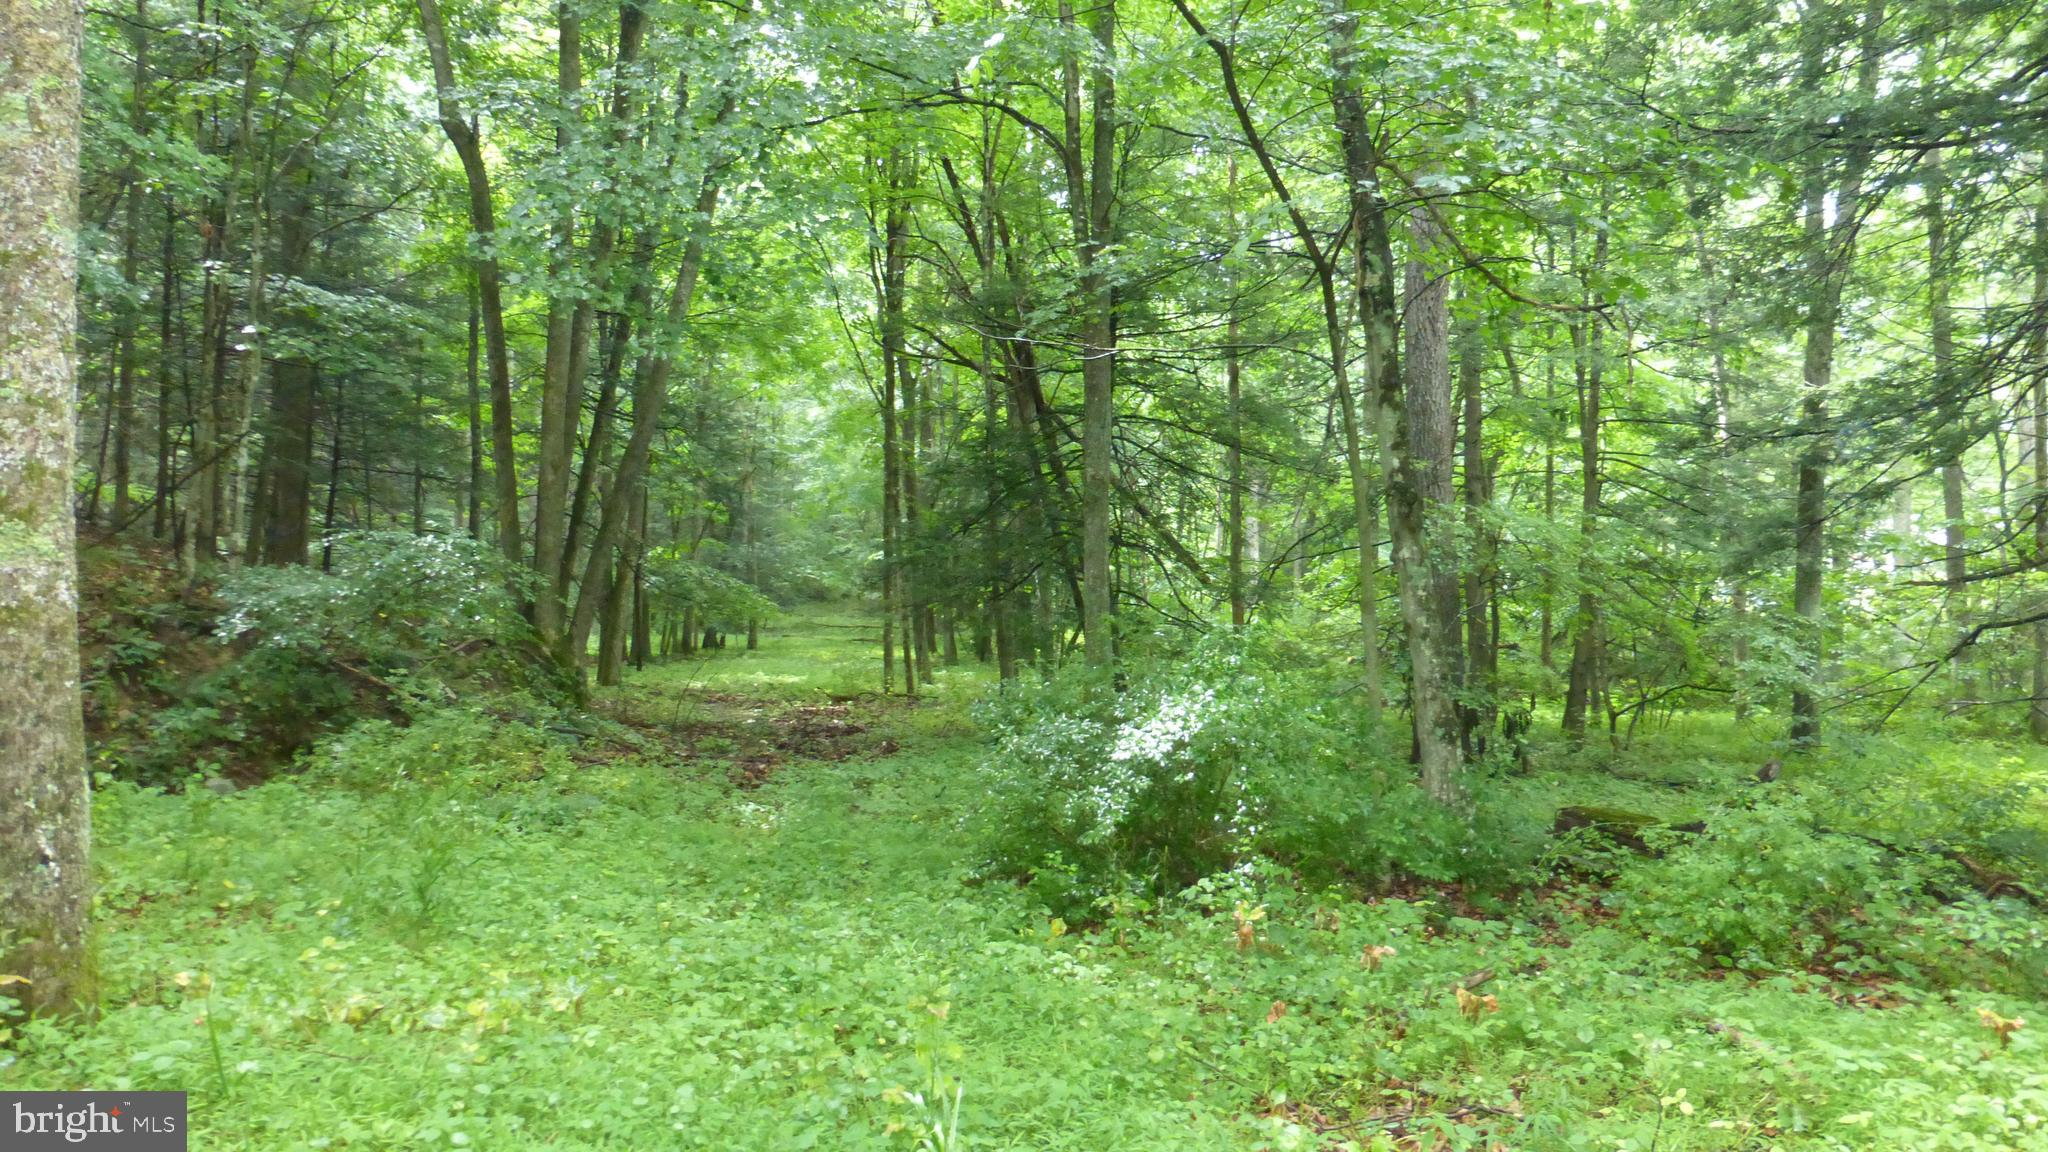 Lot 7 MIDDLE COVE, LOST CITY, WV 26810